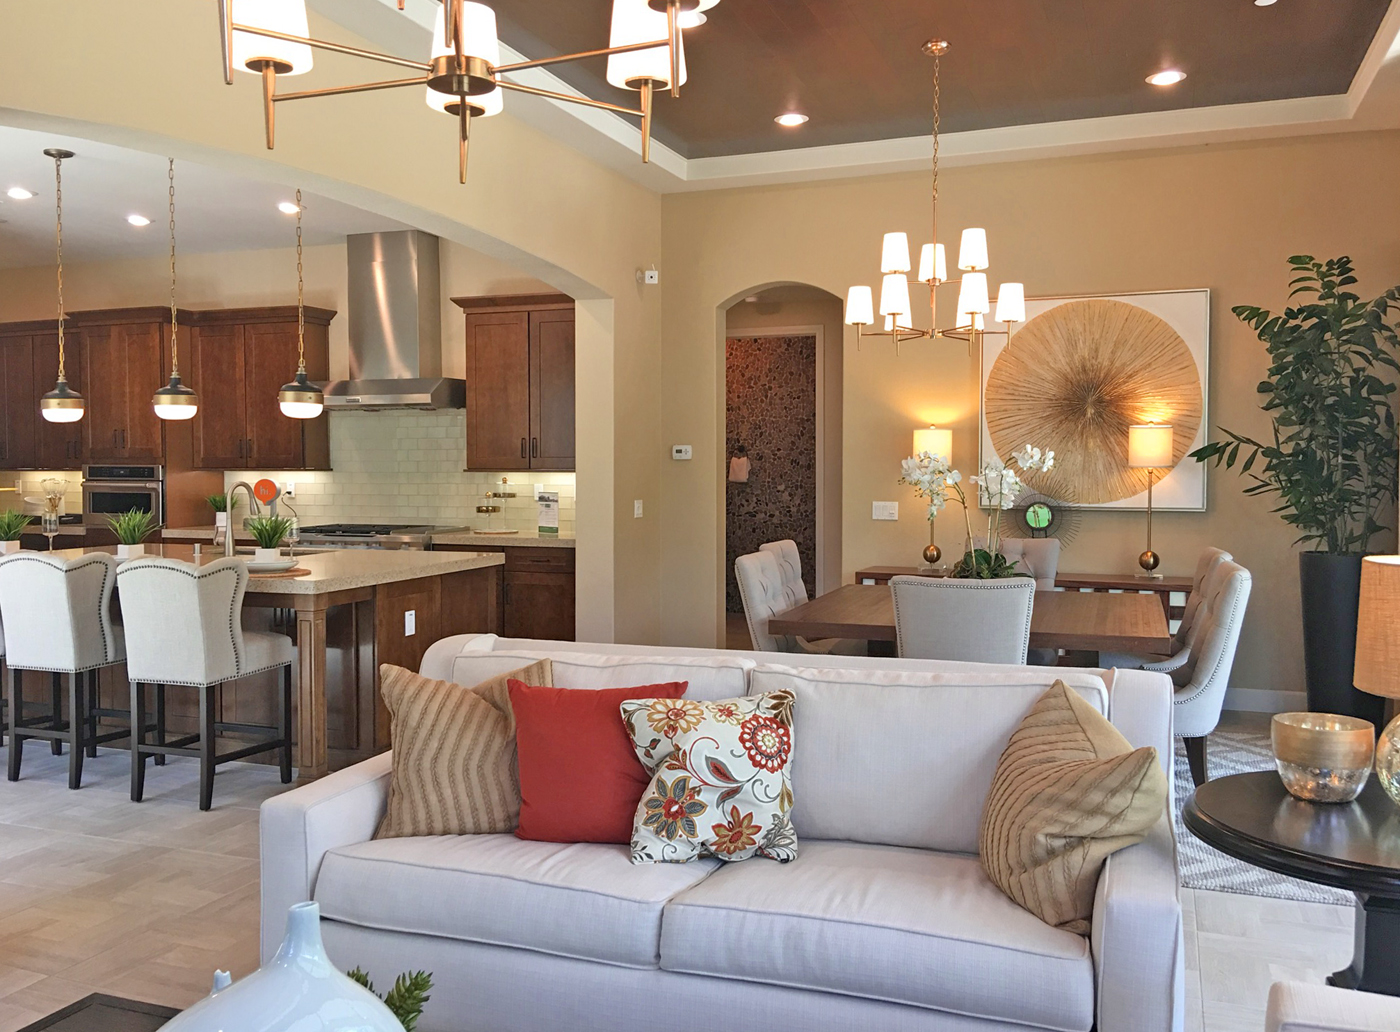 Furniture from model homes for sale orange county